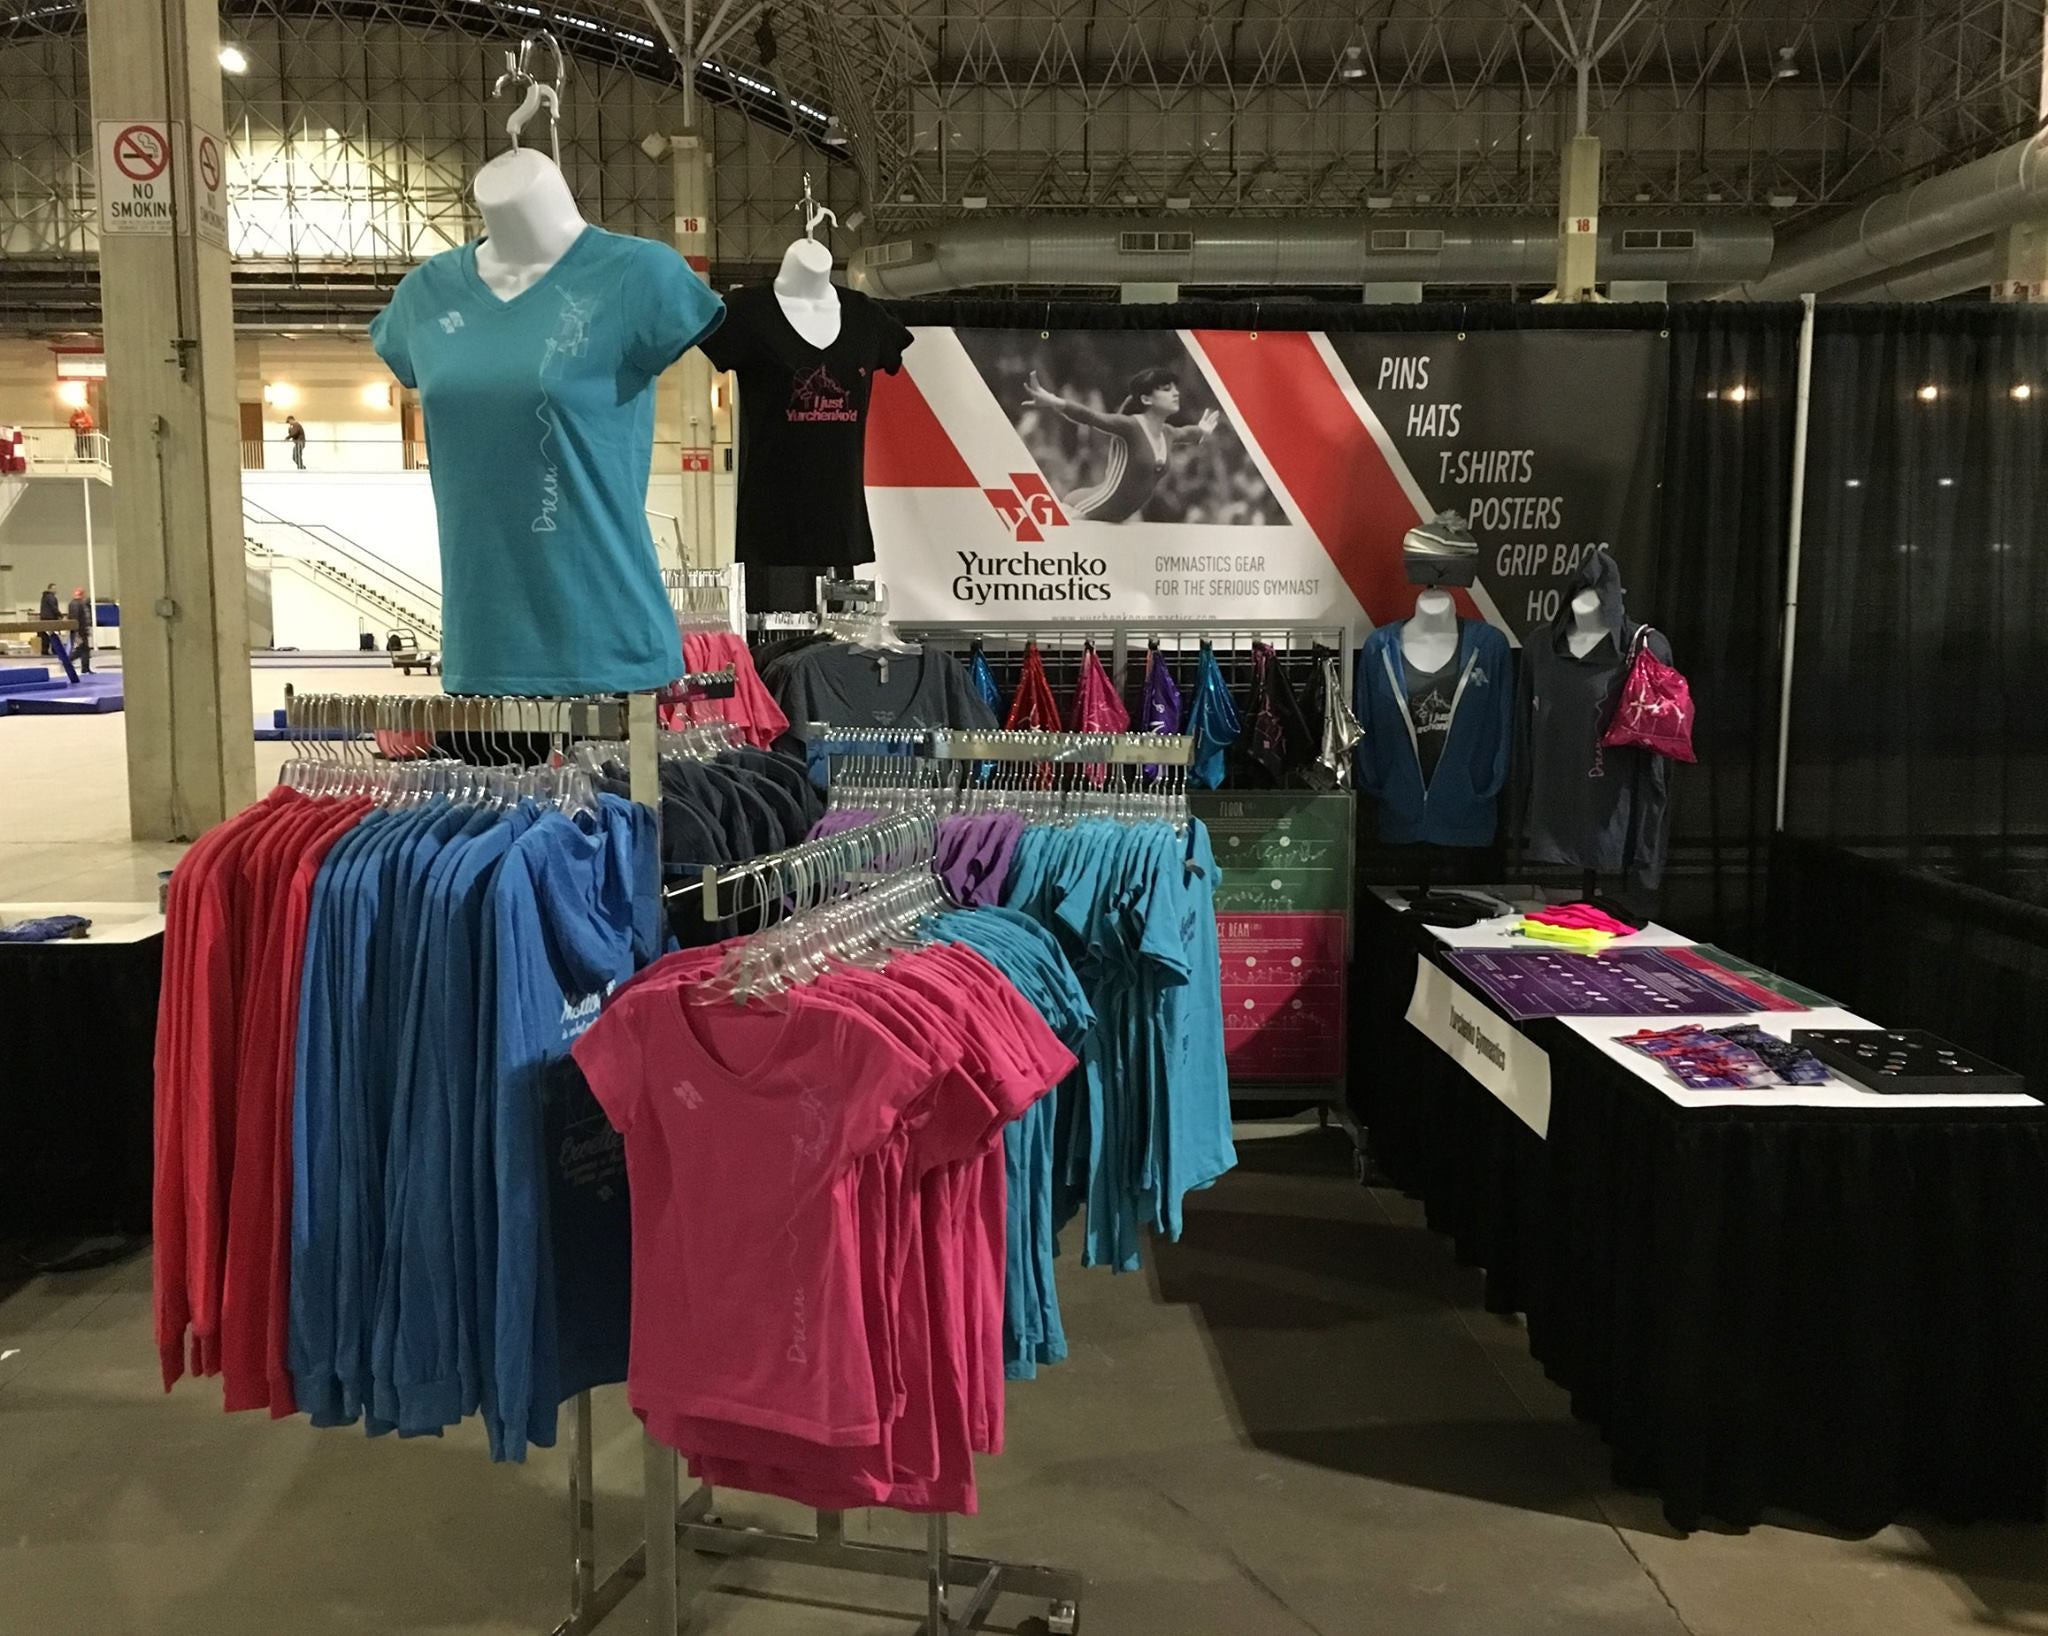 Yurchenko Gymnastics launches at Chicago Style 2016!